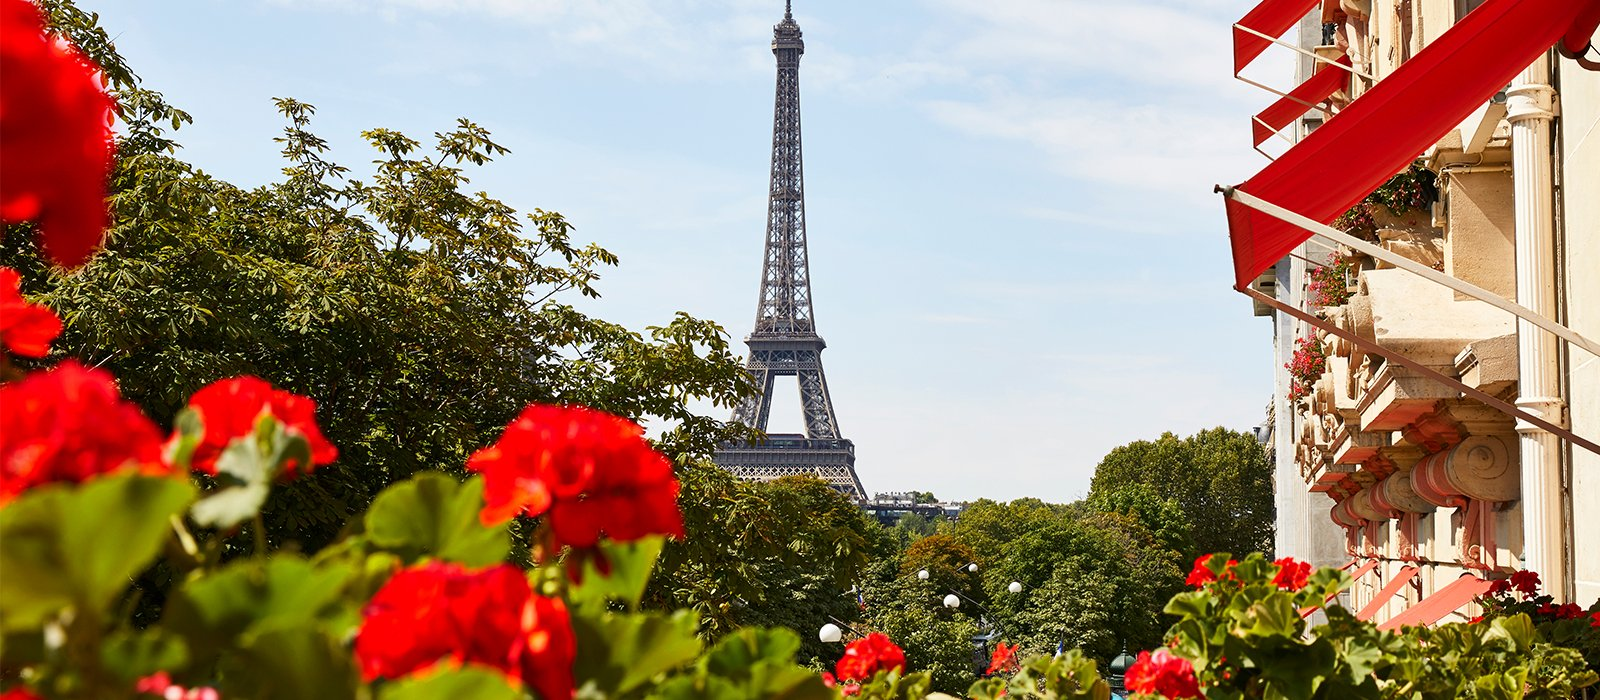 This shows the view on the Eiffel tower from Hotel Plaza Athénée